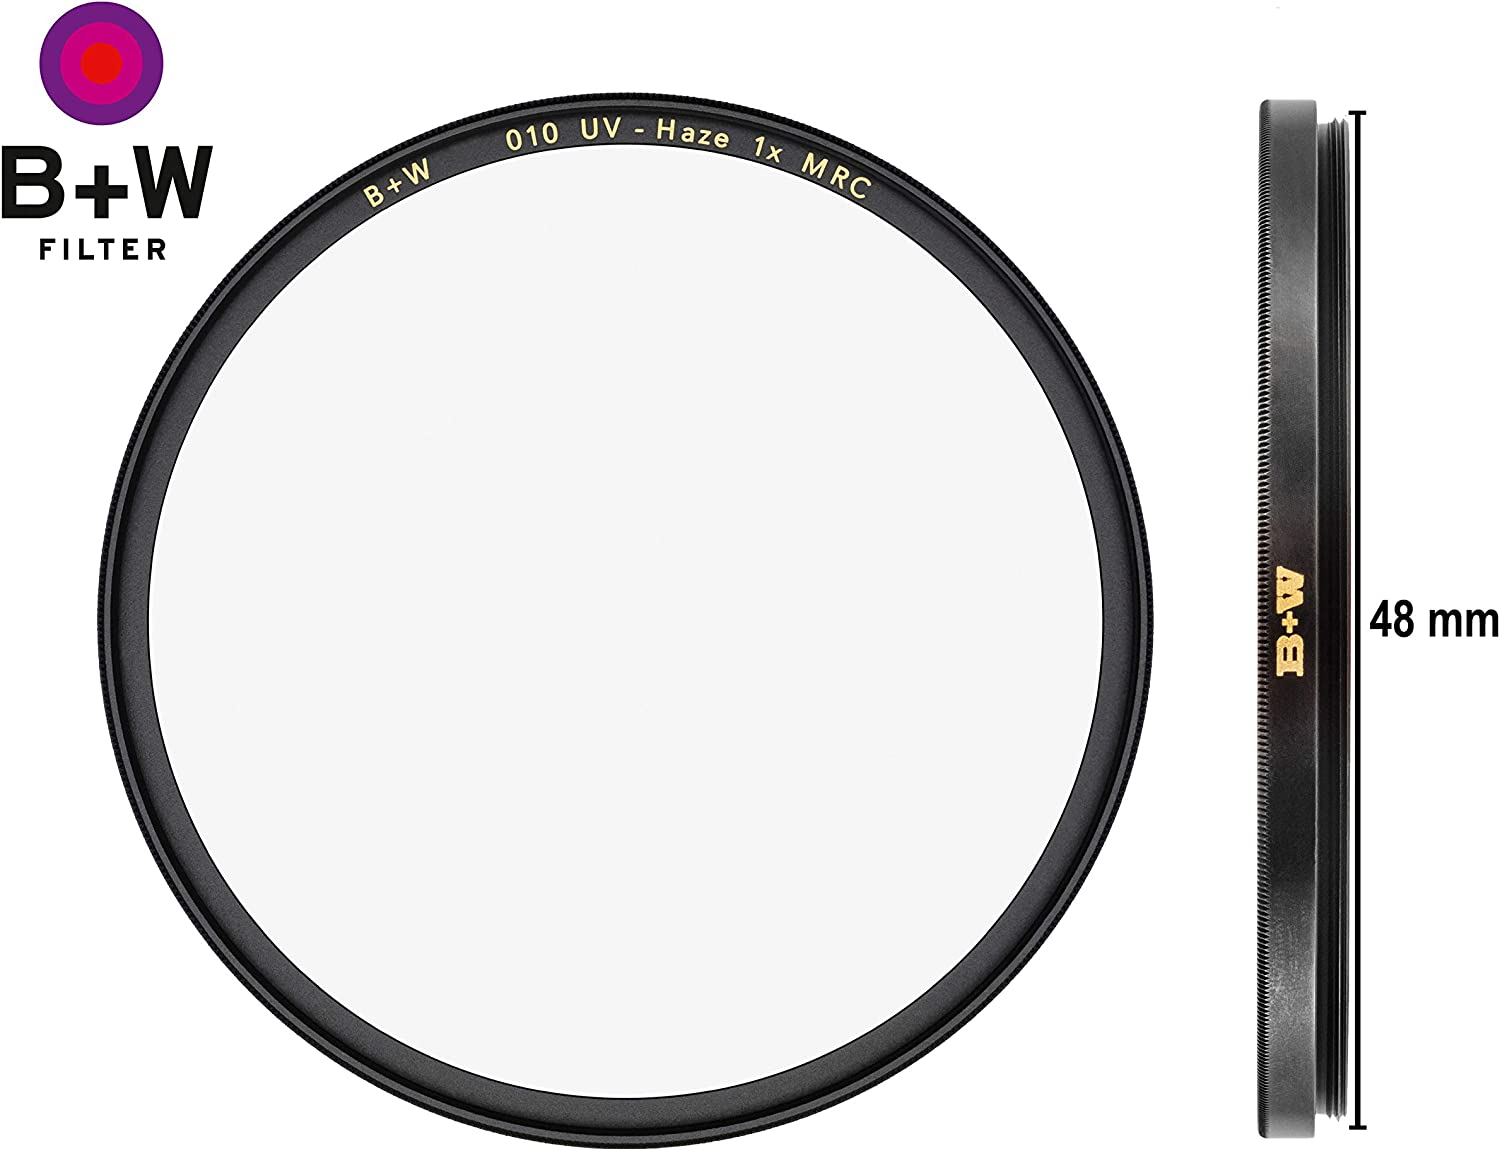 W UV-Haze Protection Filter for Camera Lens Photography Filter 010 B HTC Ultra Slim Titan Mount T-PRO 16 Layers Multi-Resistant and Nano Coating 82 mm